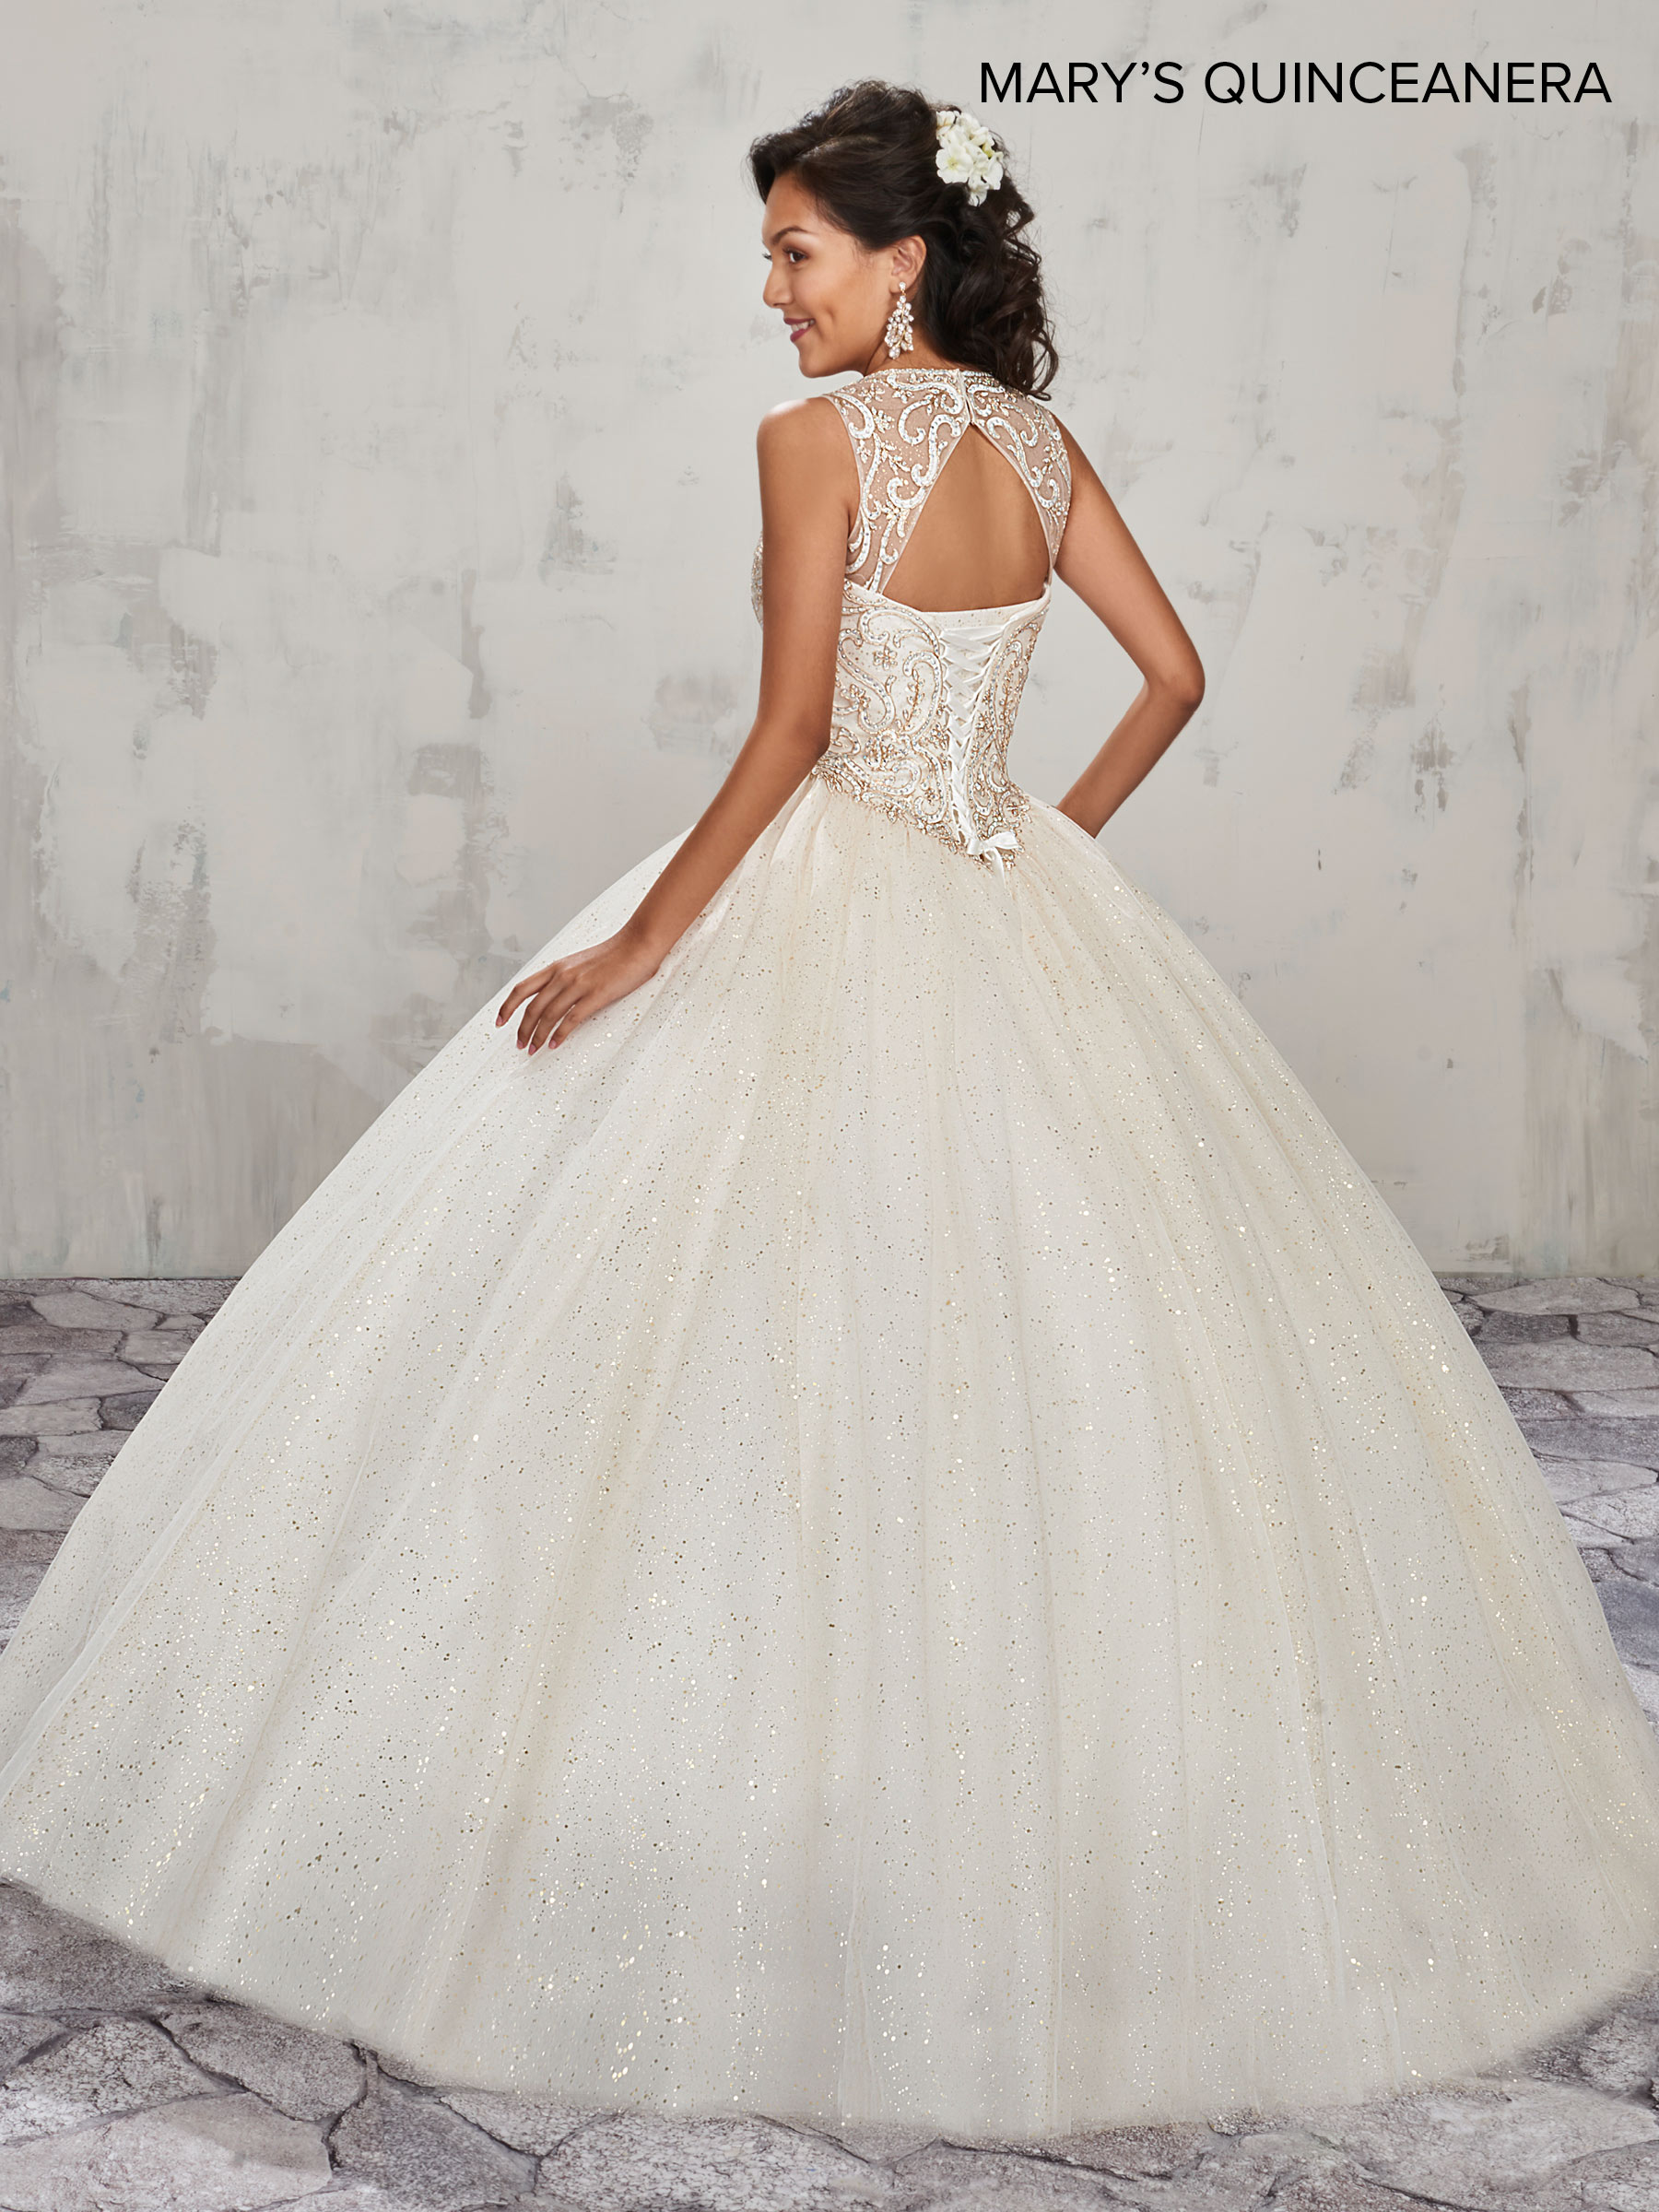 Marys Quinceanera Dresses | Mary's Quinceanera | Style - MQ1004